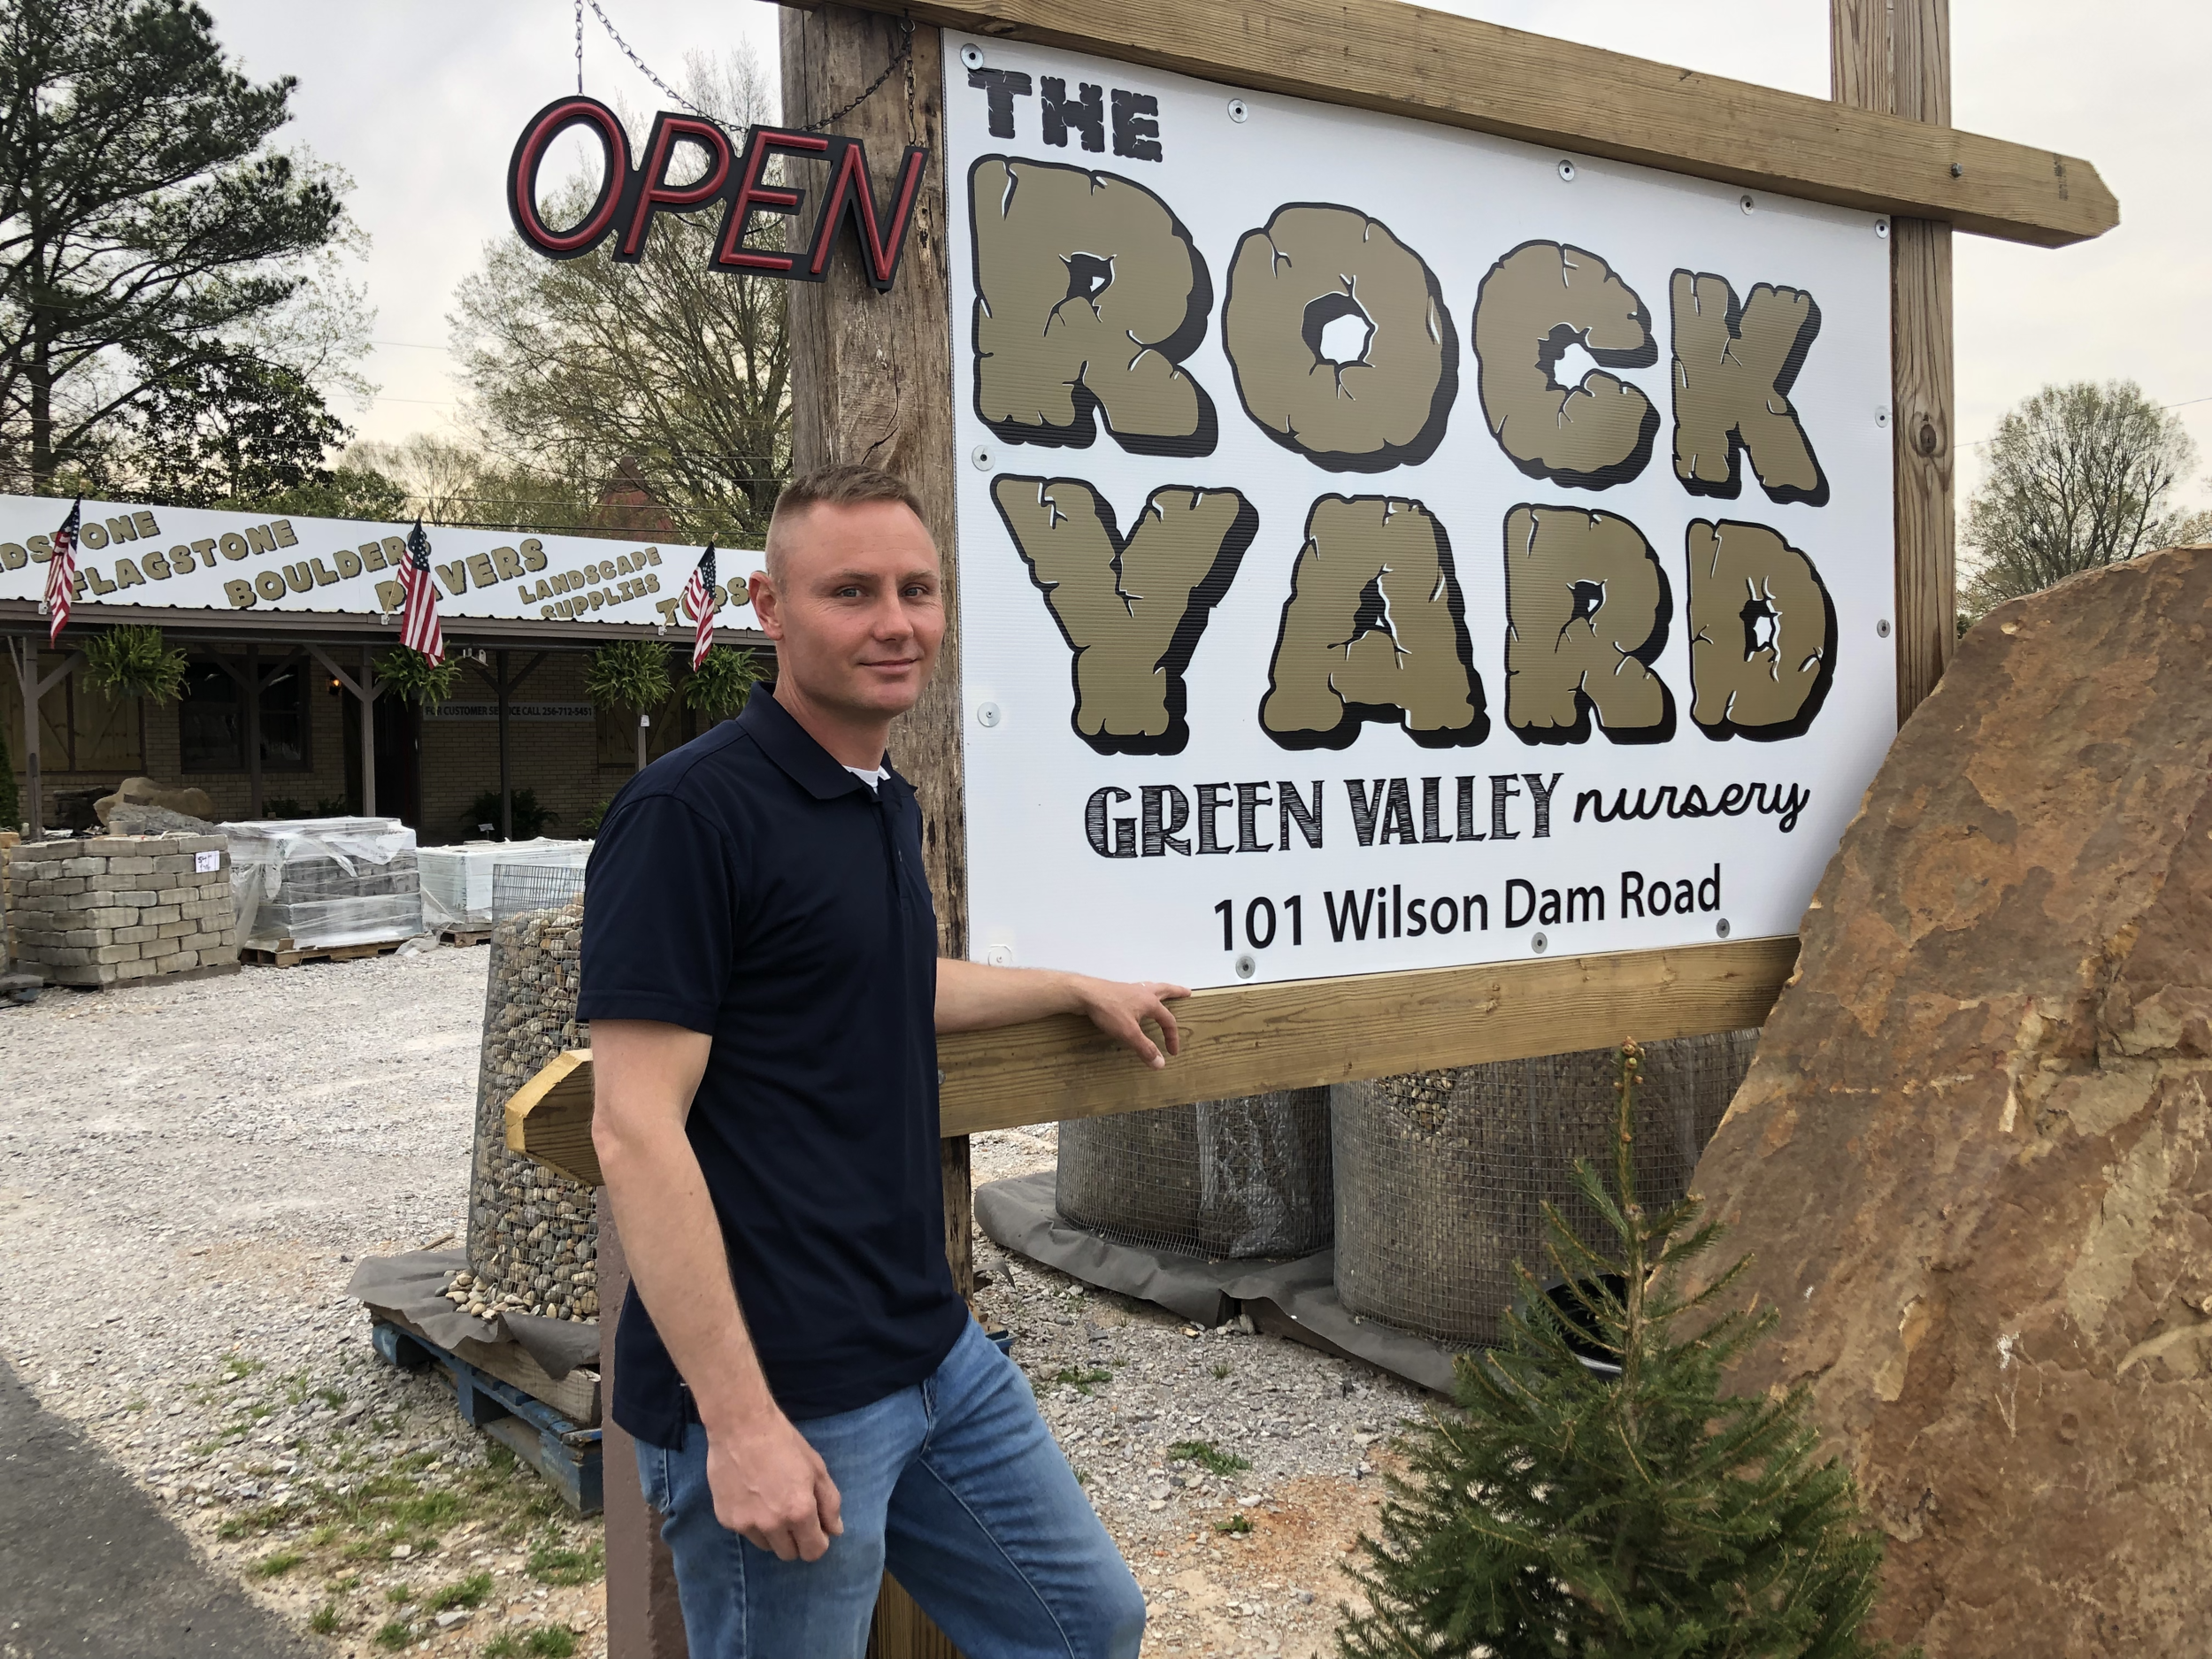 Introducing The Rock Yard's manager, Jeremy White.